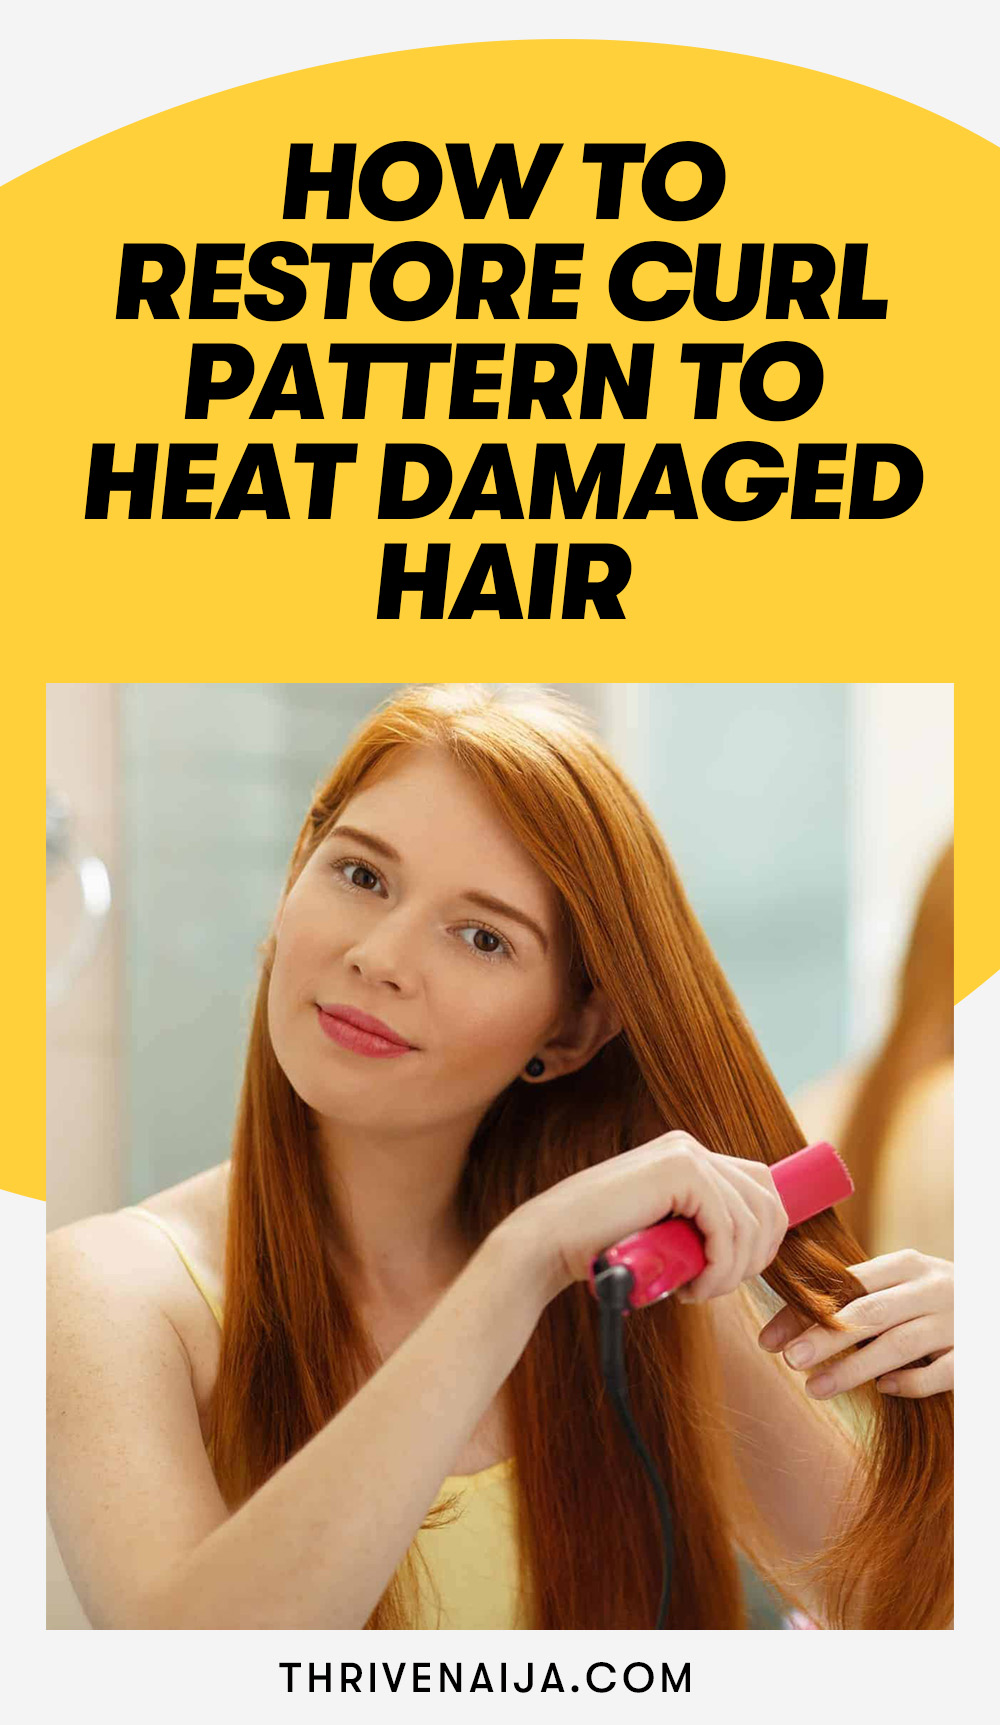 How to Restore Curl Pattern to Heat Damaged Hair